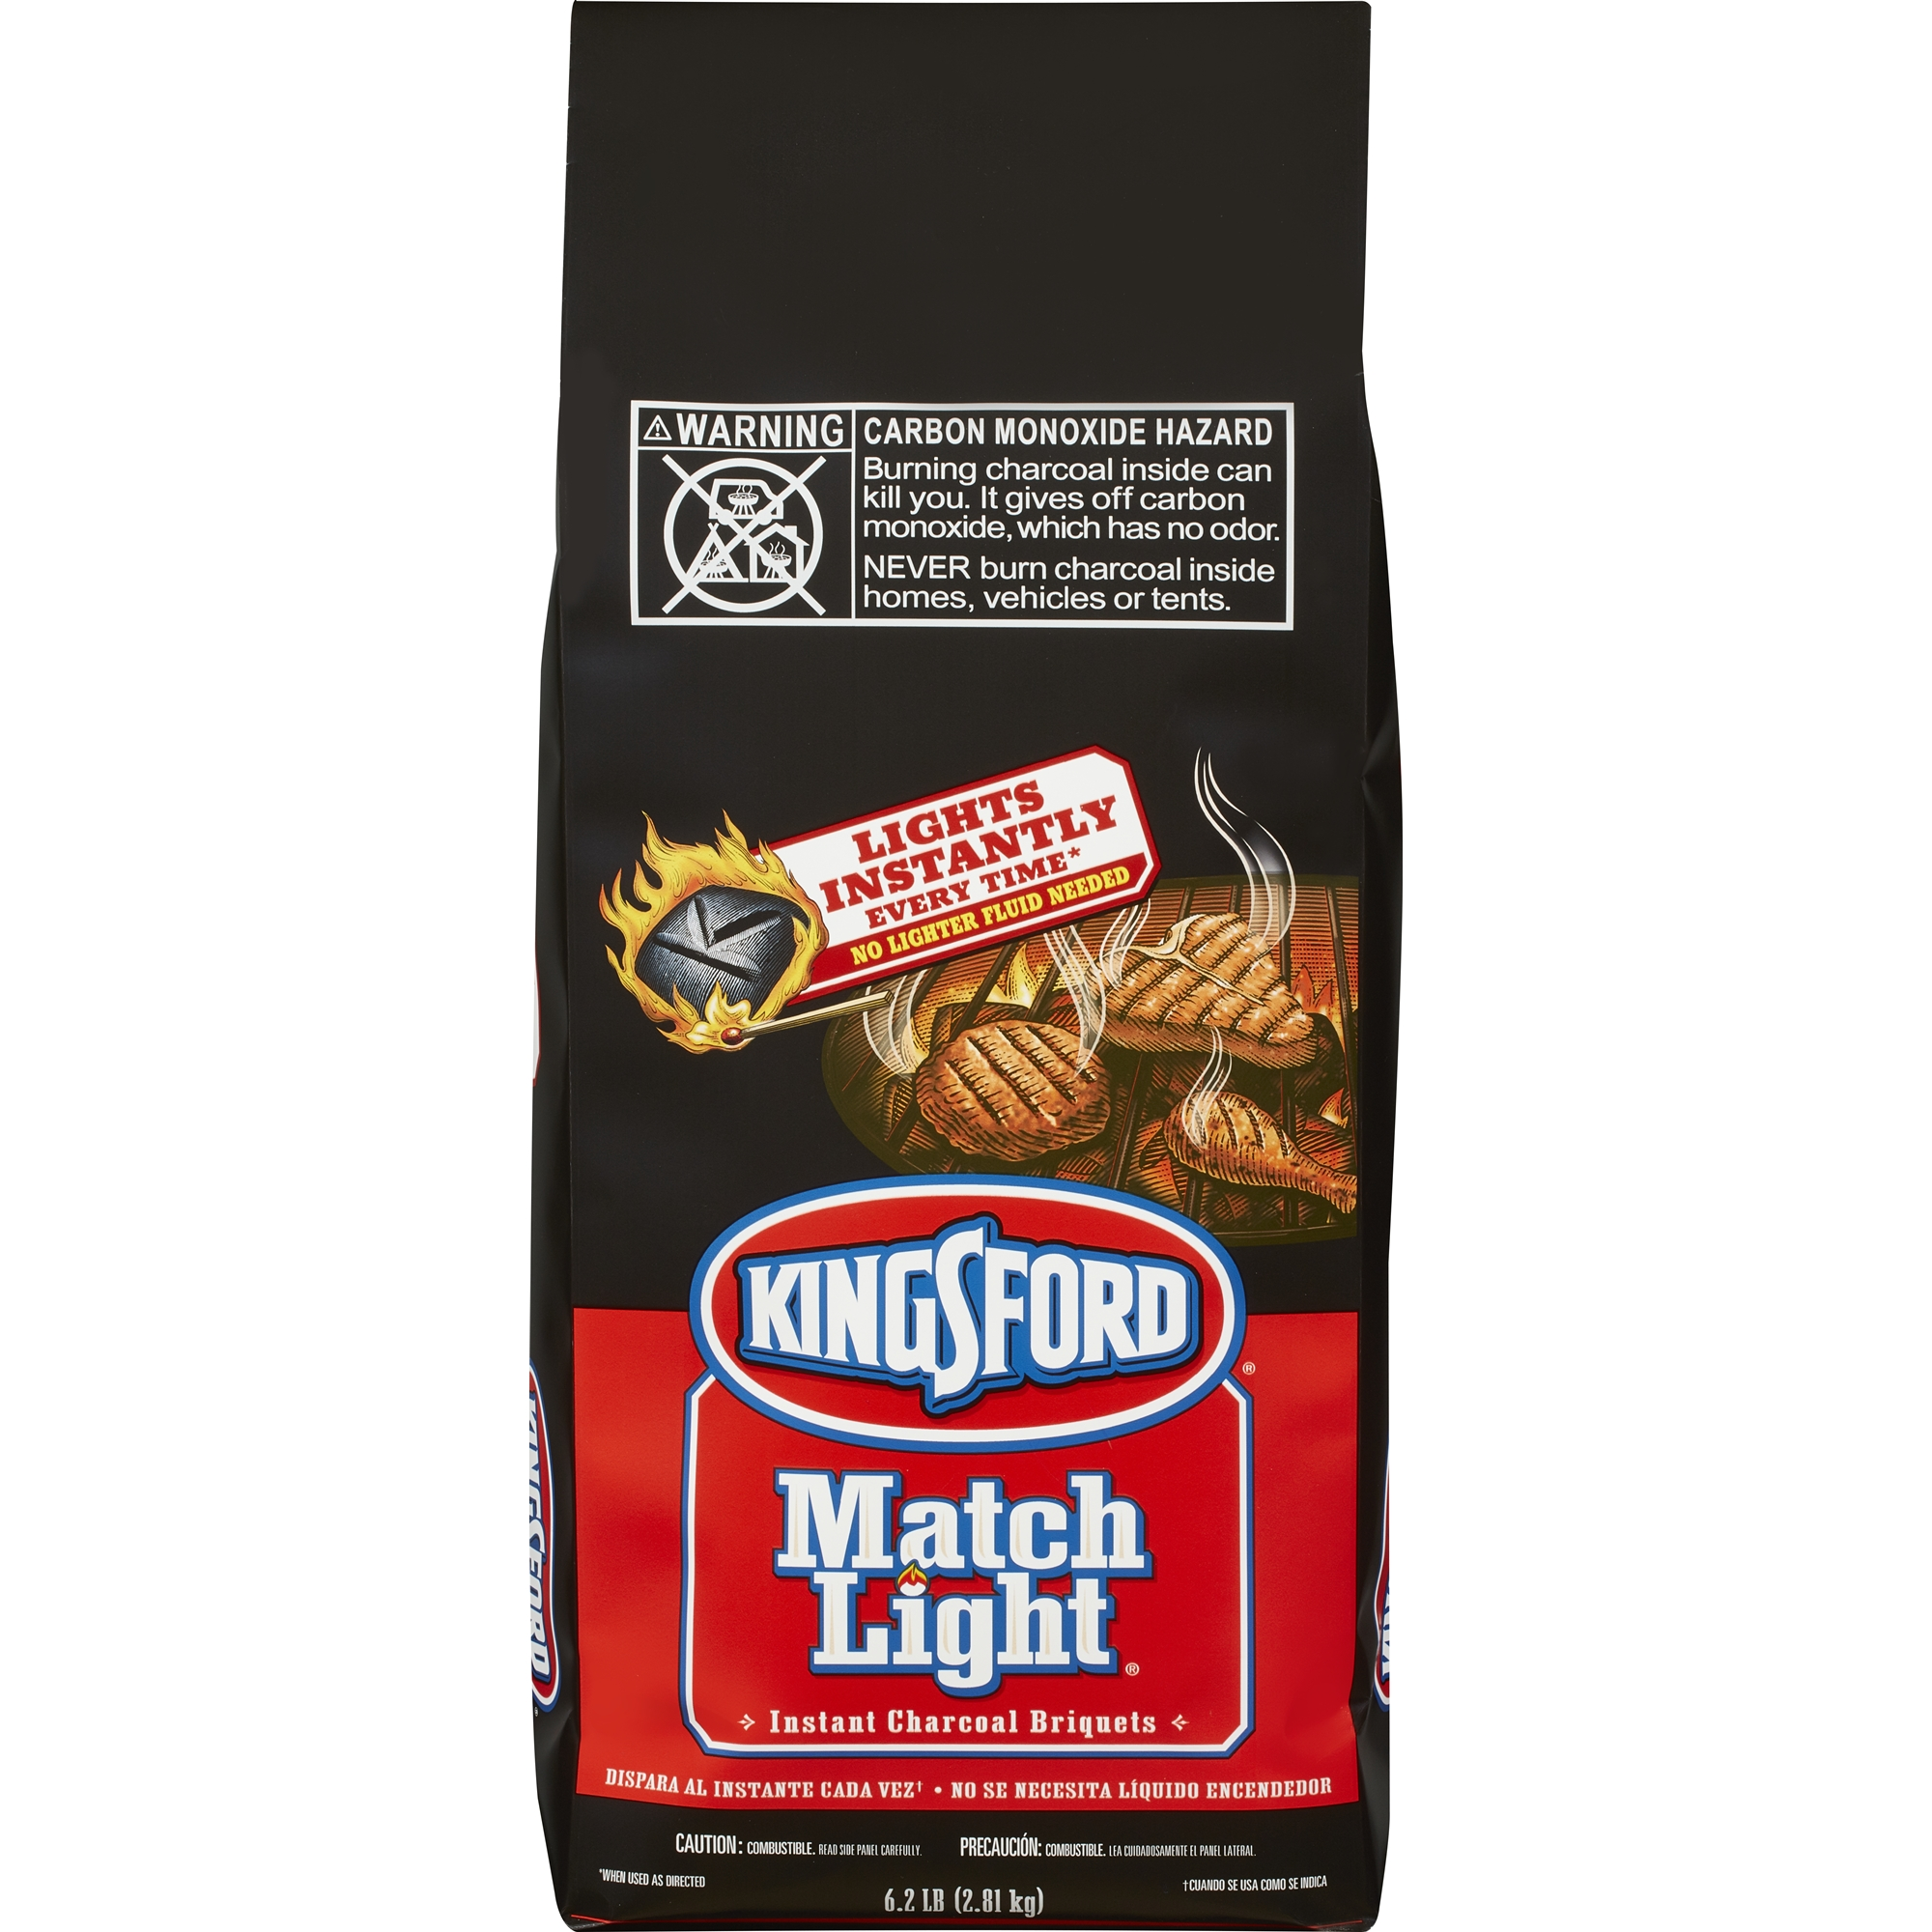 Kingsford Match Light Charcoal Briquettes, 6.2 lbs